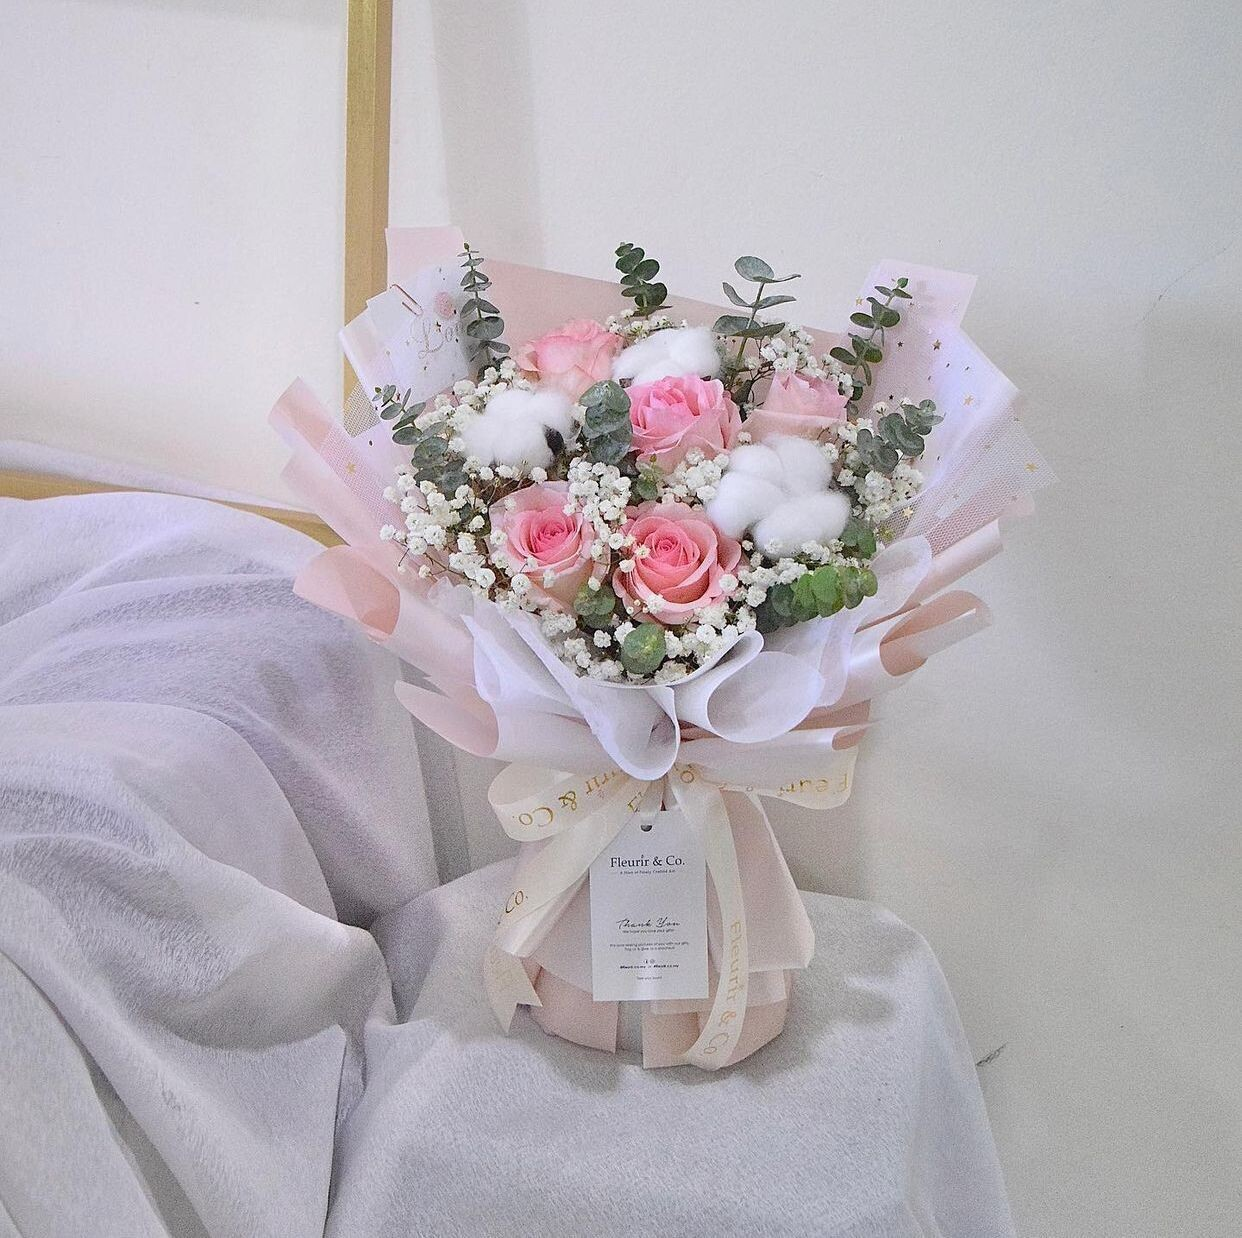 Cotton Roses (By: Fleurir & Co from Kuching)